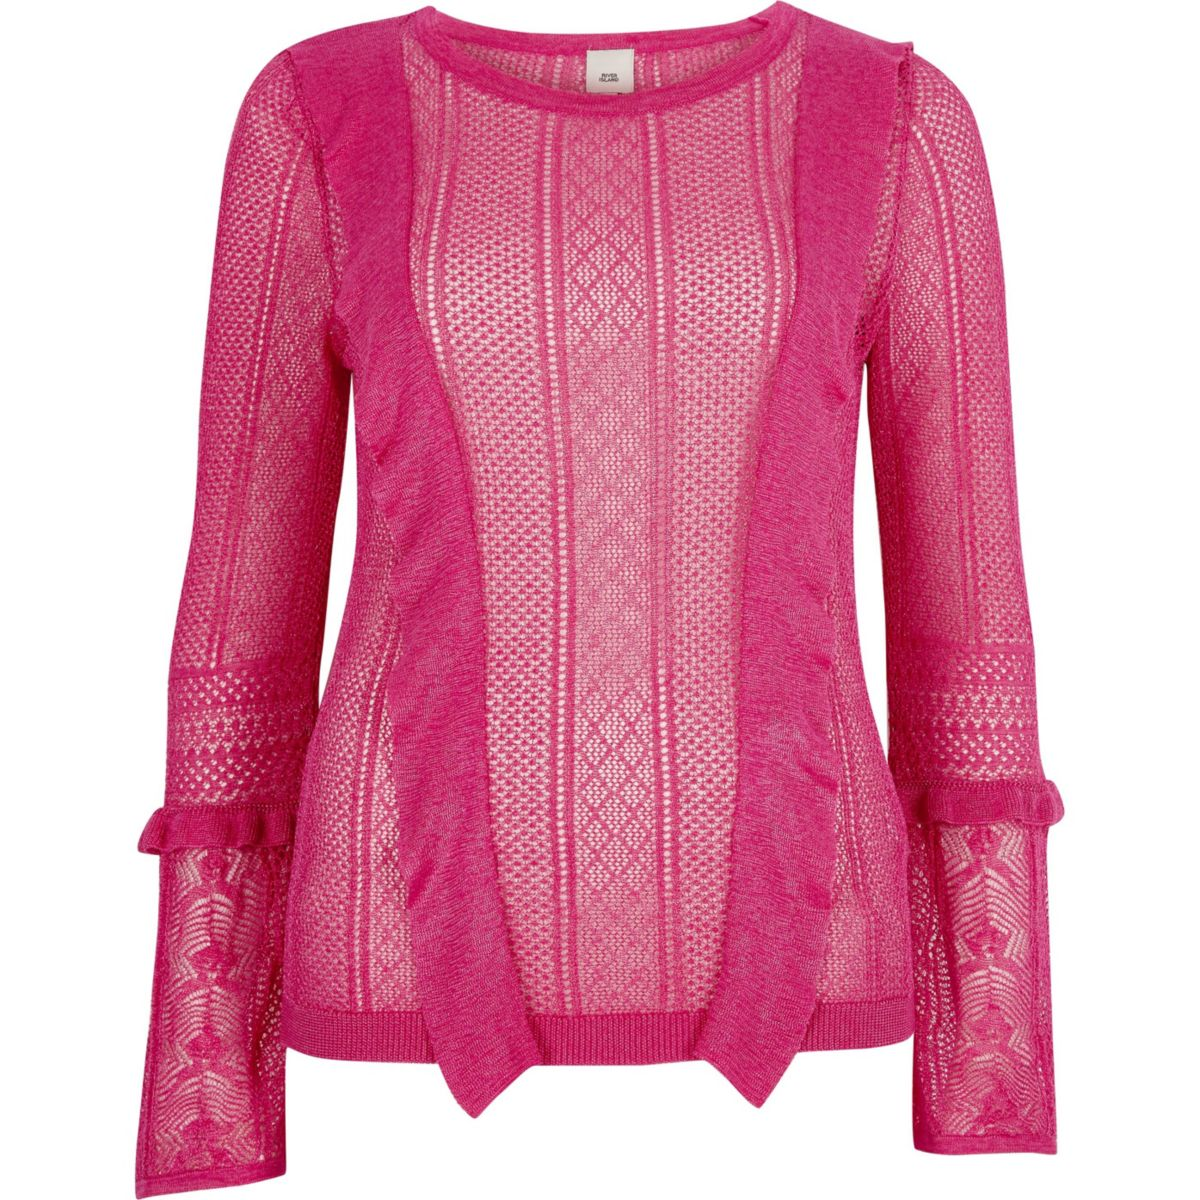 Pink open knit frill detail sweater